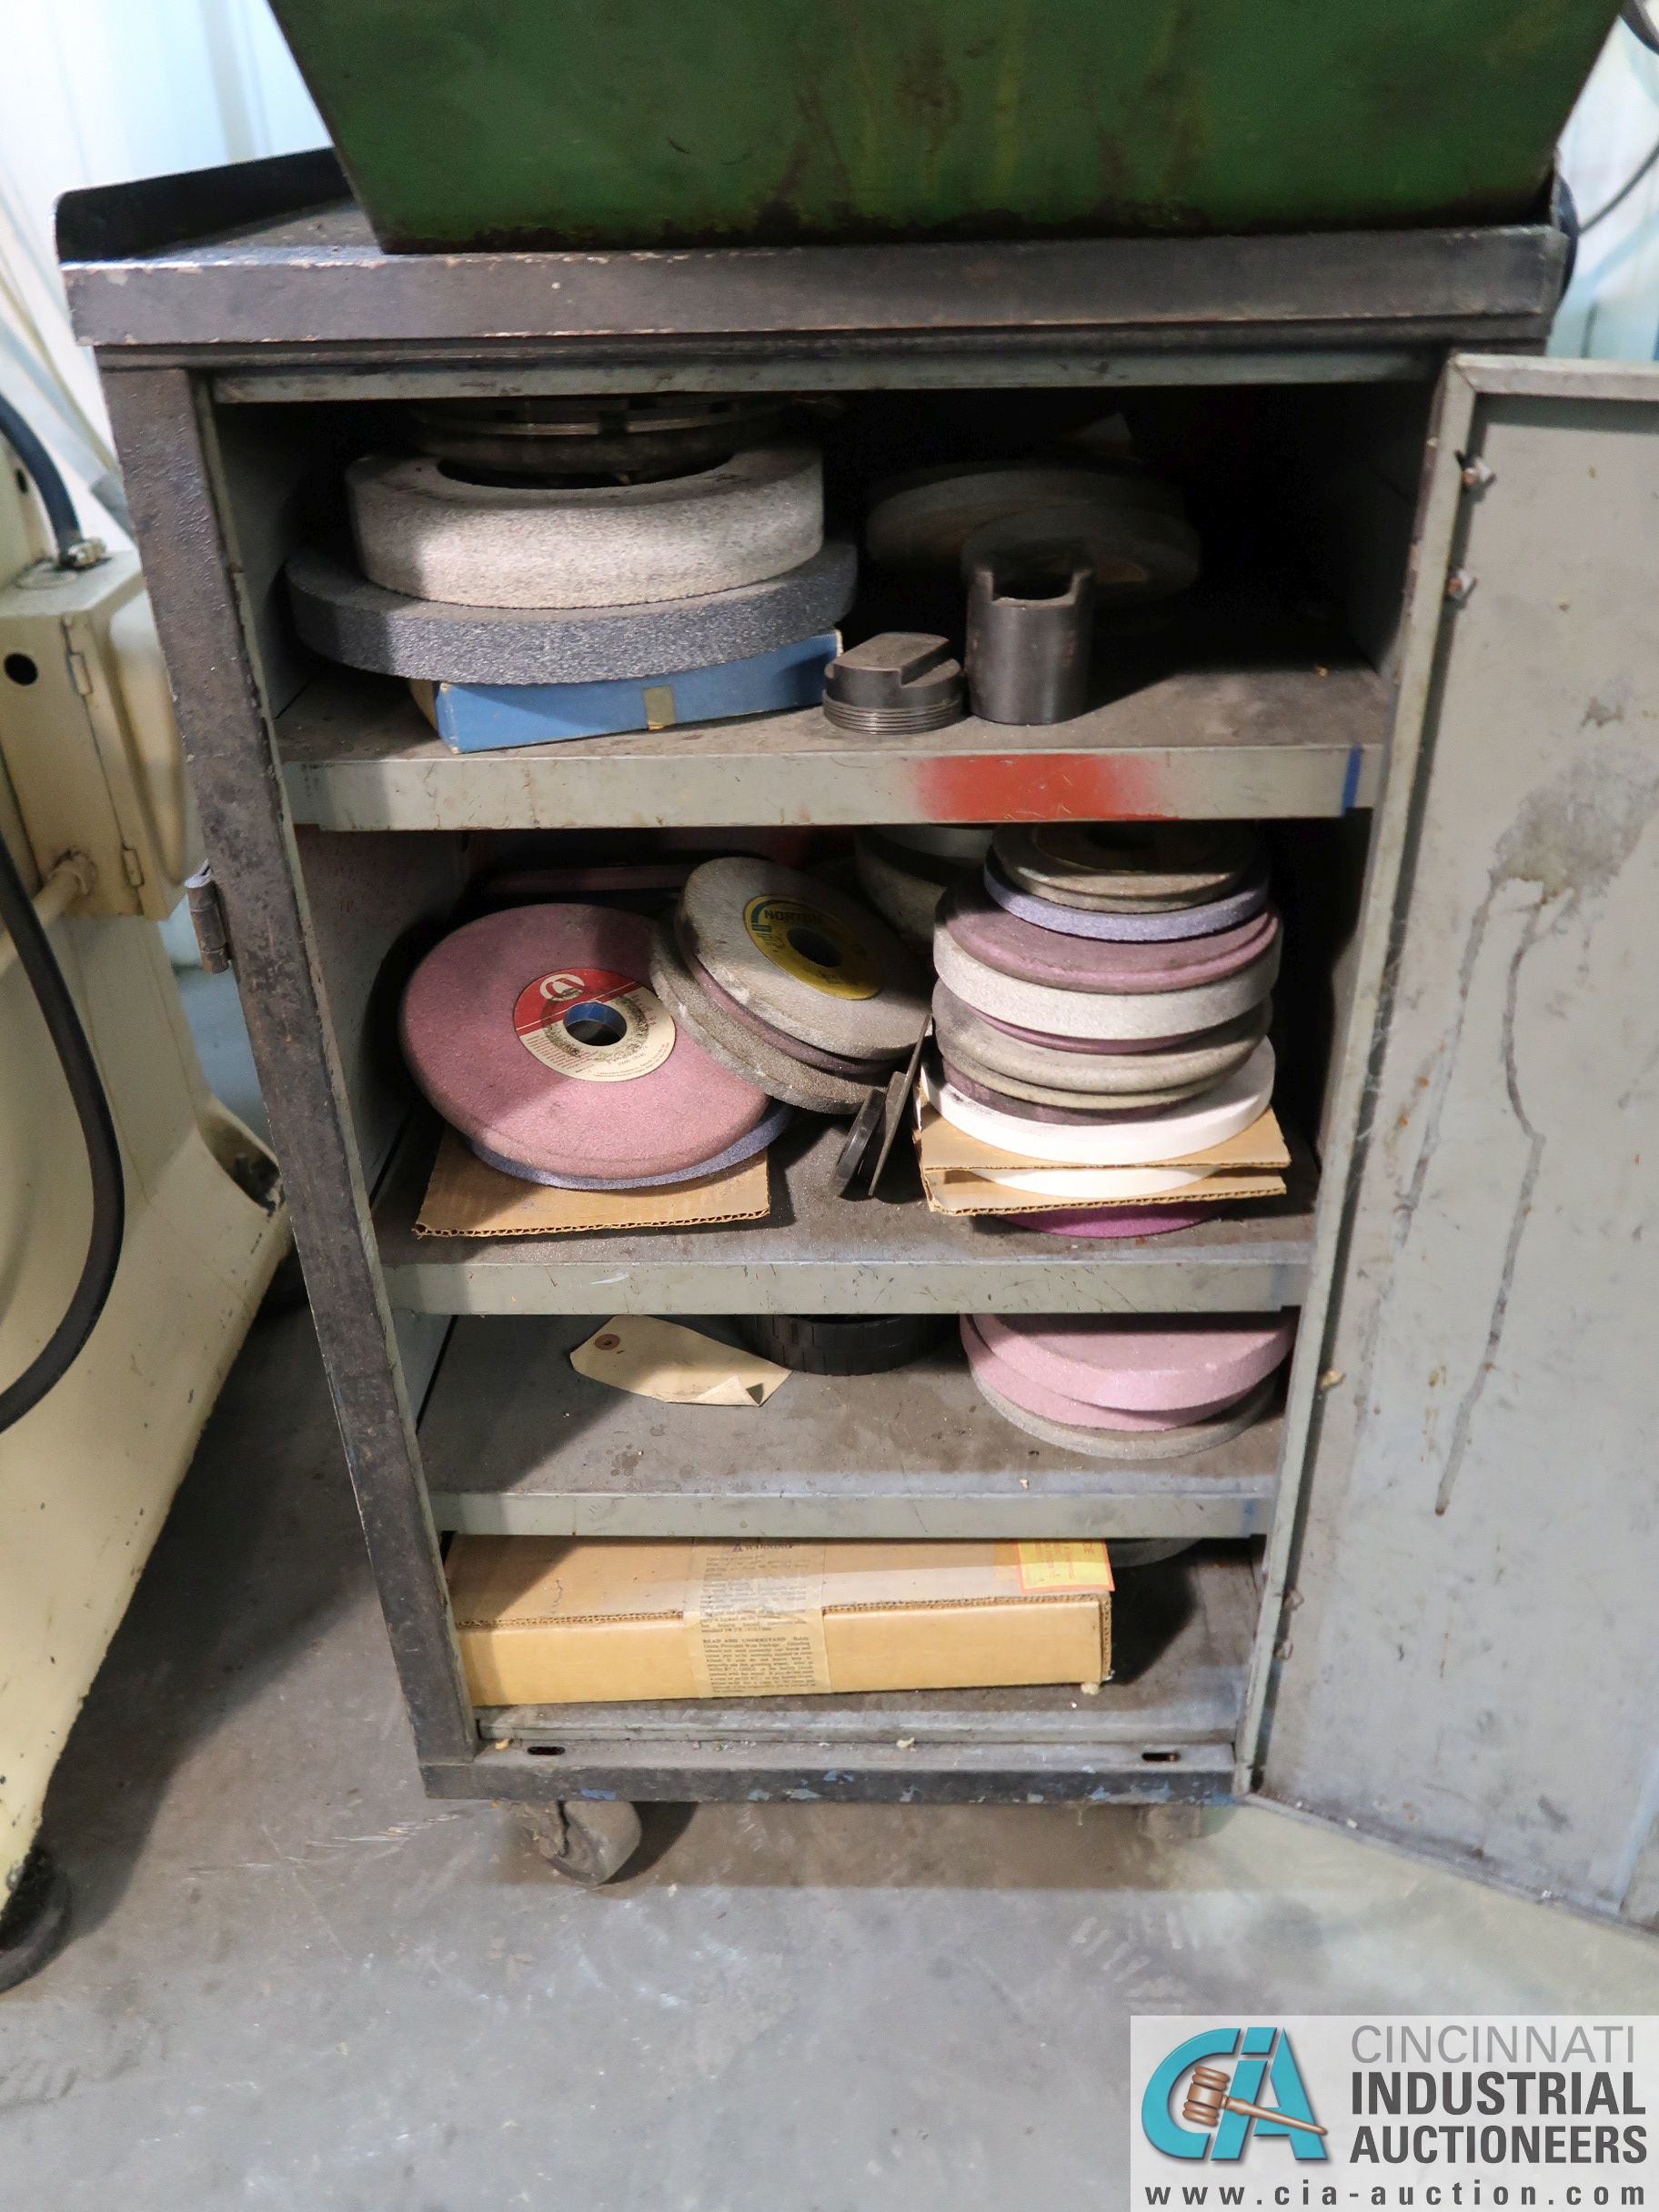 (LOT) MISC. GRINDING WHEELS WITH CABINET - Image 2 of 2